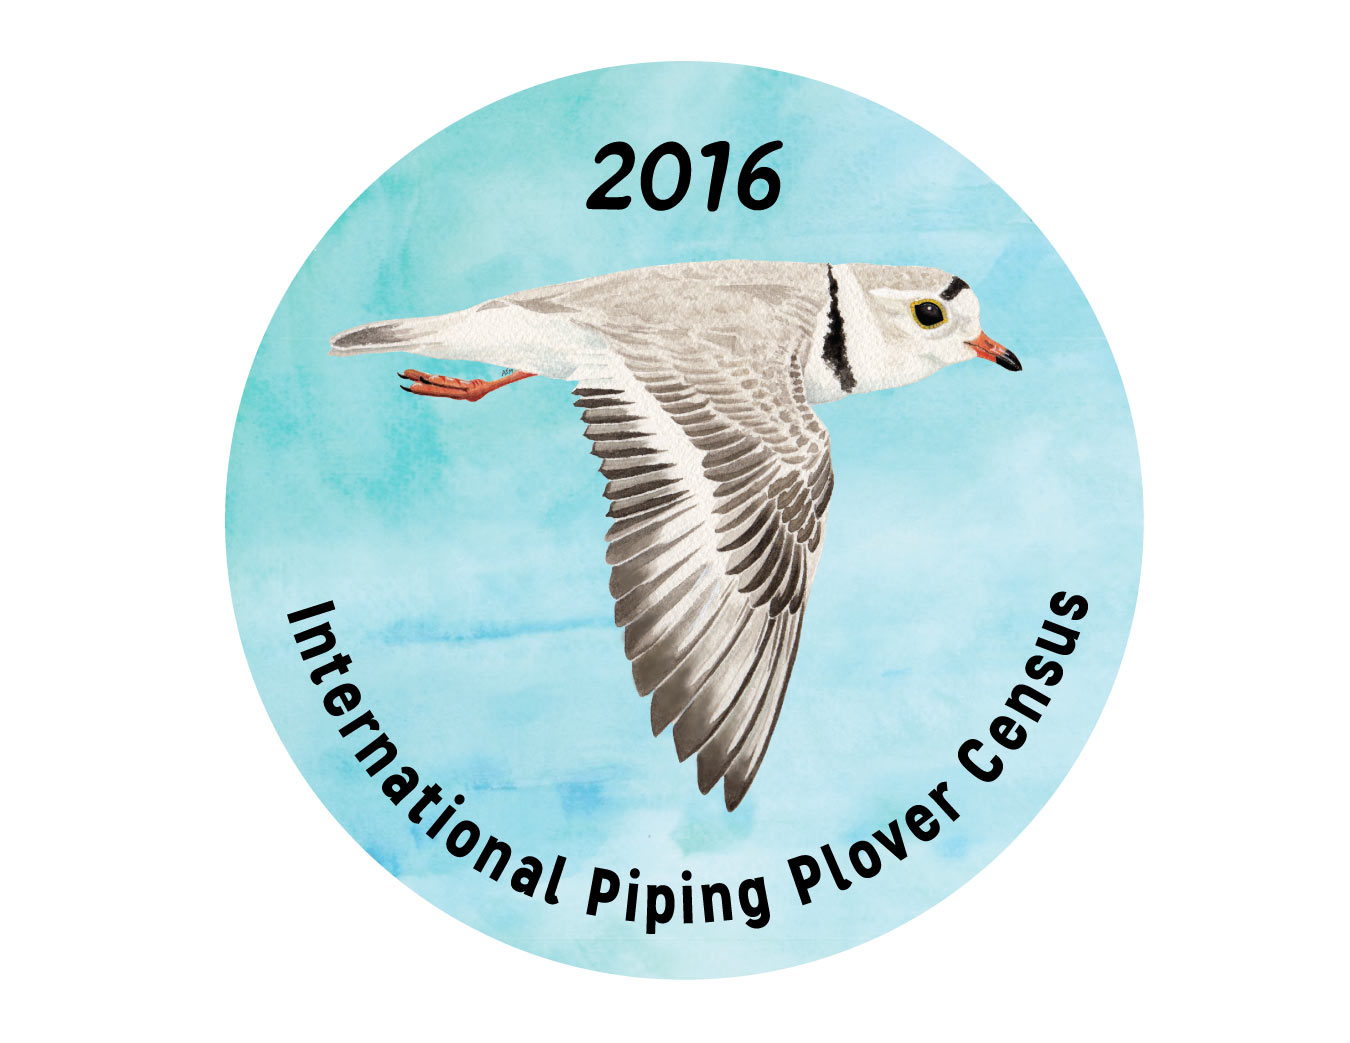 Button design commissioned by U.S.G.S for 2016 International Piping Plover survey volunteers, created with watercolor and Adobe Illustrator.